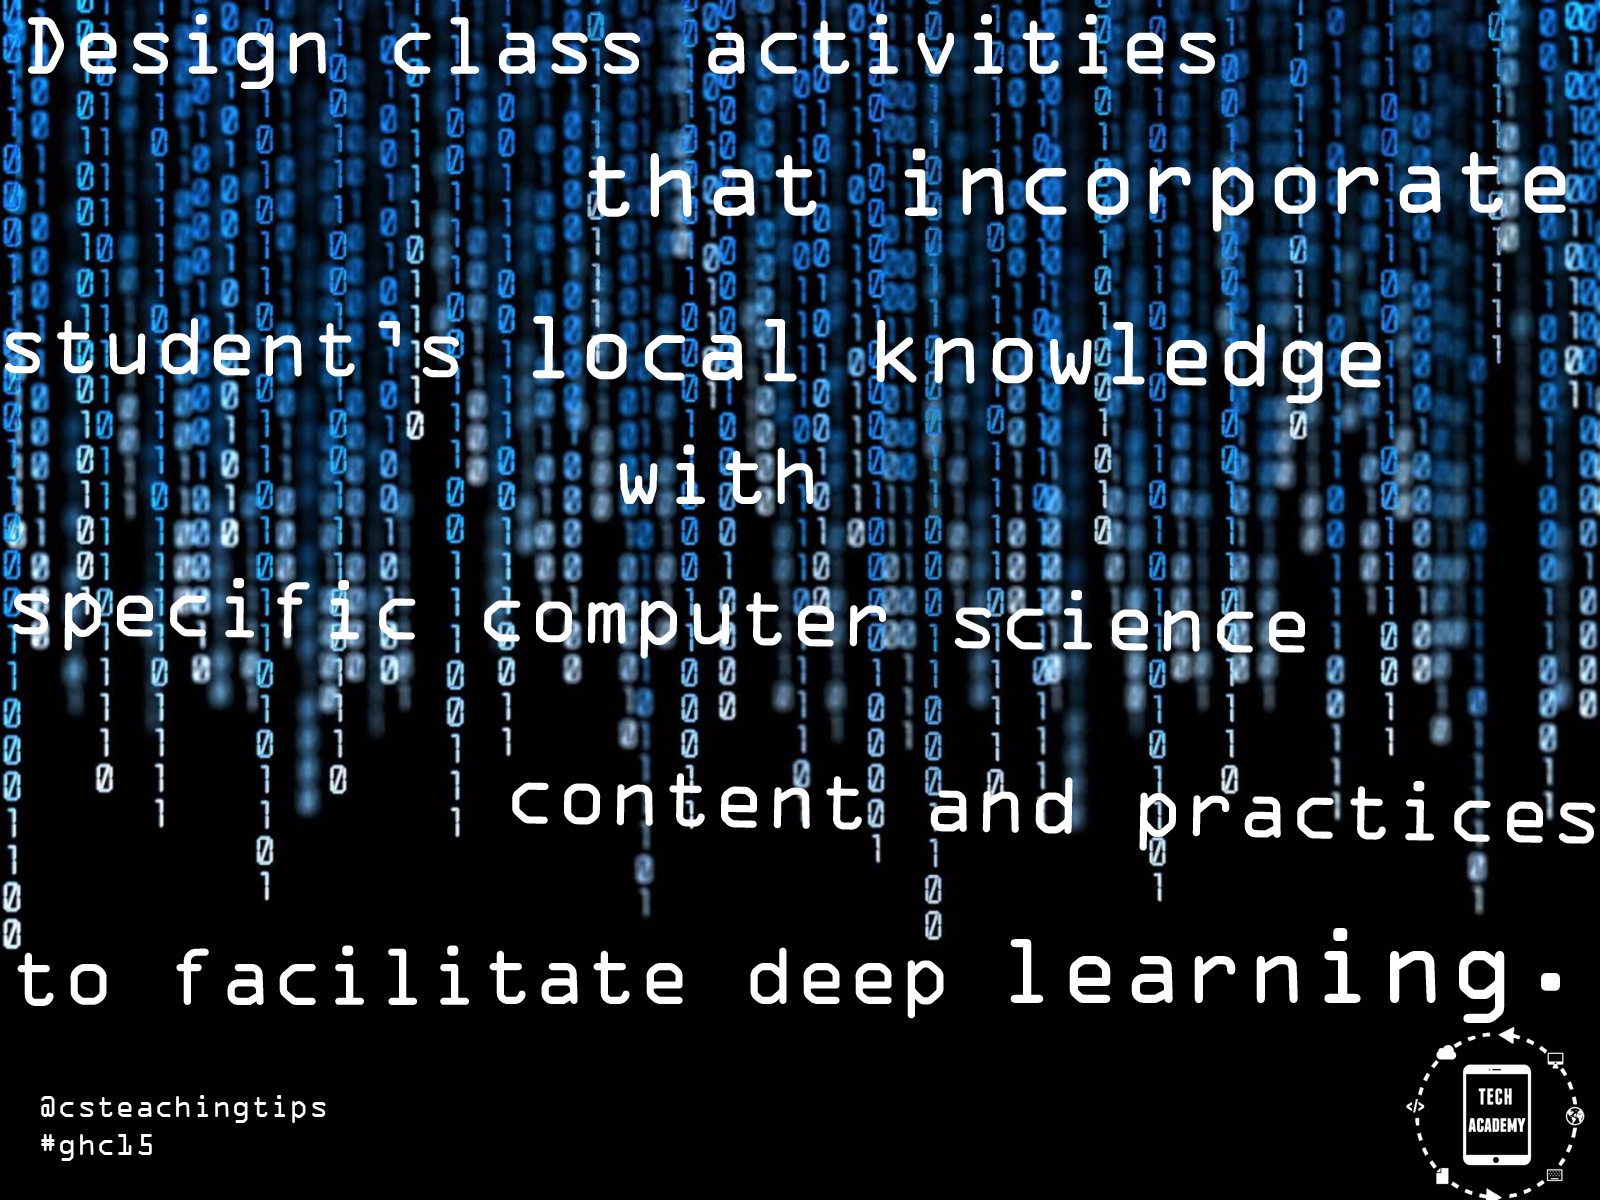 Design class activities that incorporate a student's local knowledge with specific computer science content and practices to facilitate deep learning